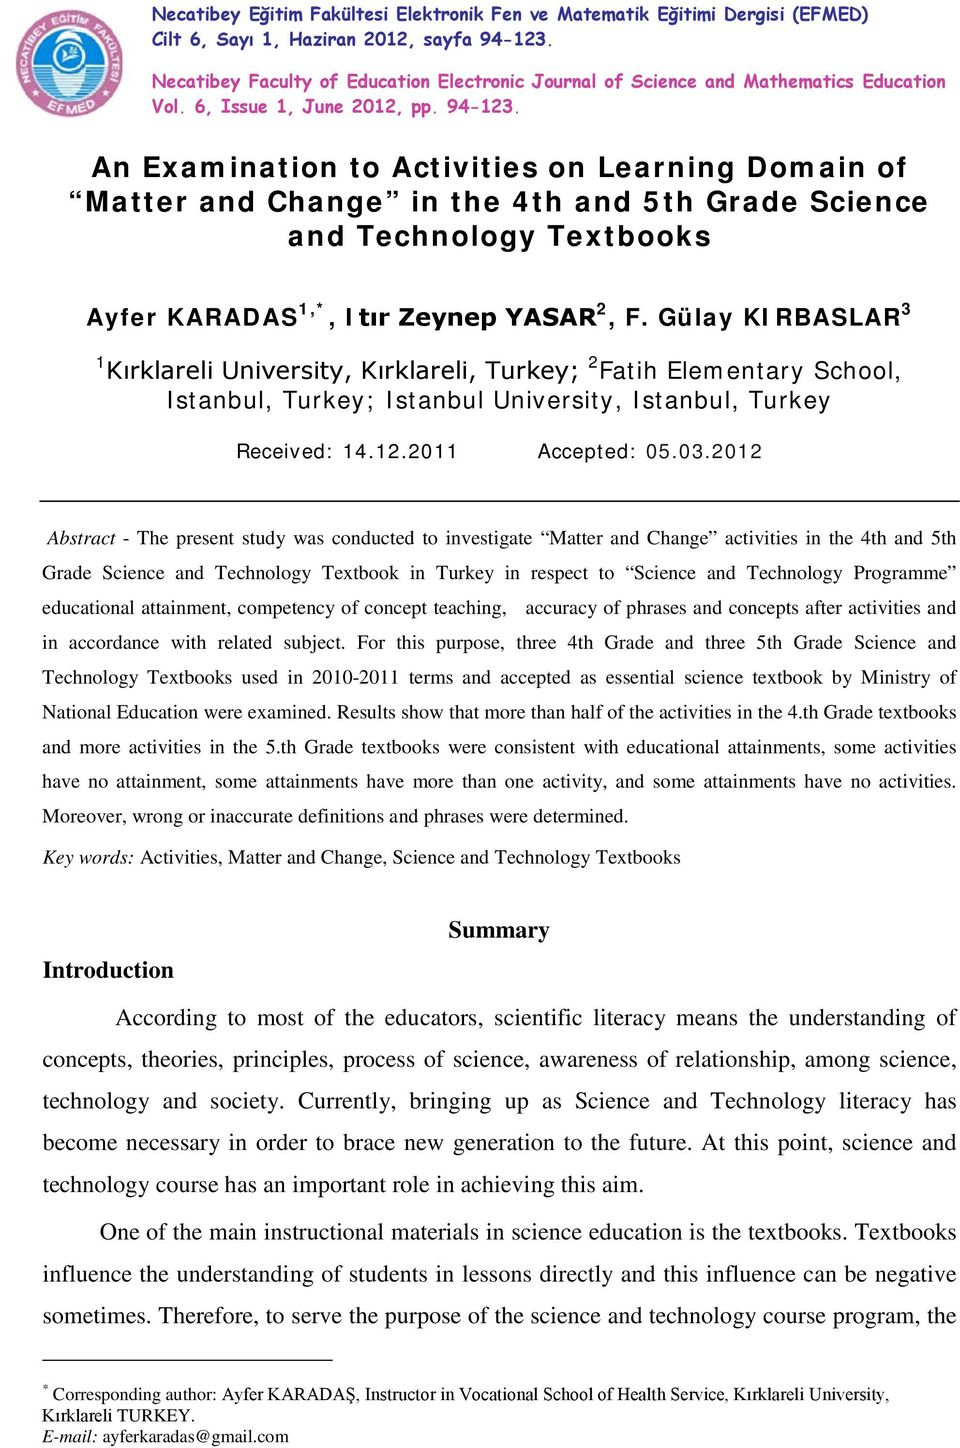 An Examination to Activities on Learning Domain of Matter and Change in the 4th and 5th Grade Science and Technology Textbooks Ayfer KARADAS 1,*, Itır Zeynep YASAR 2, F.